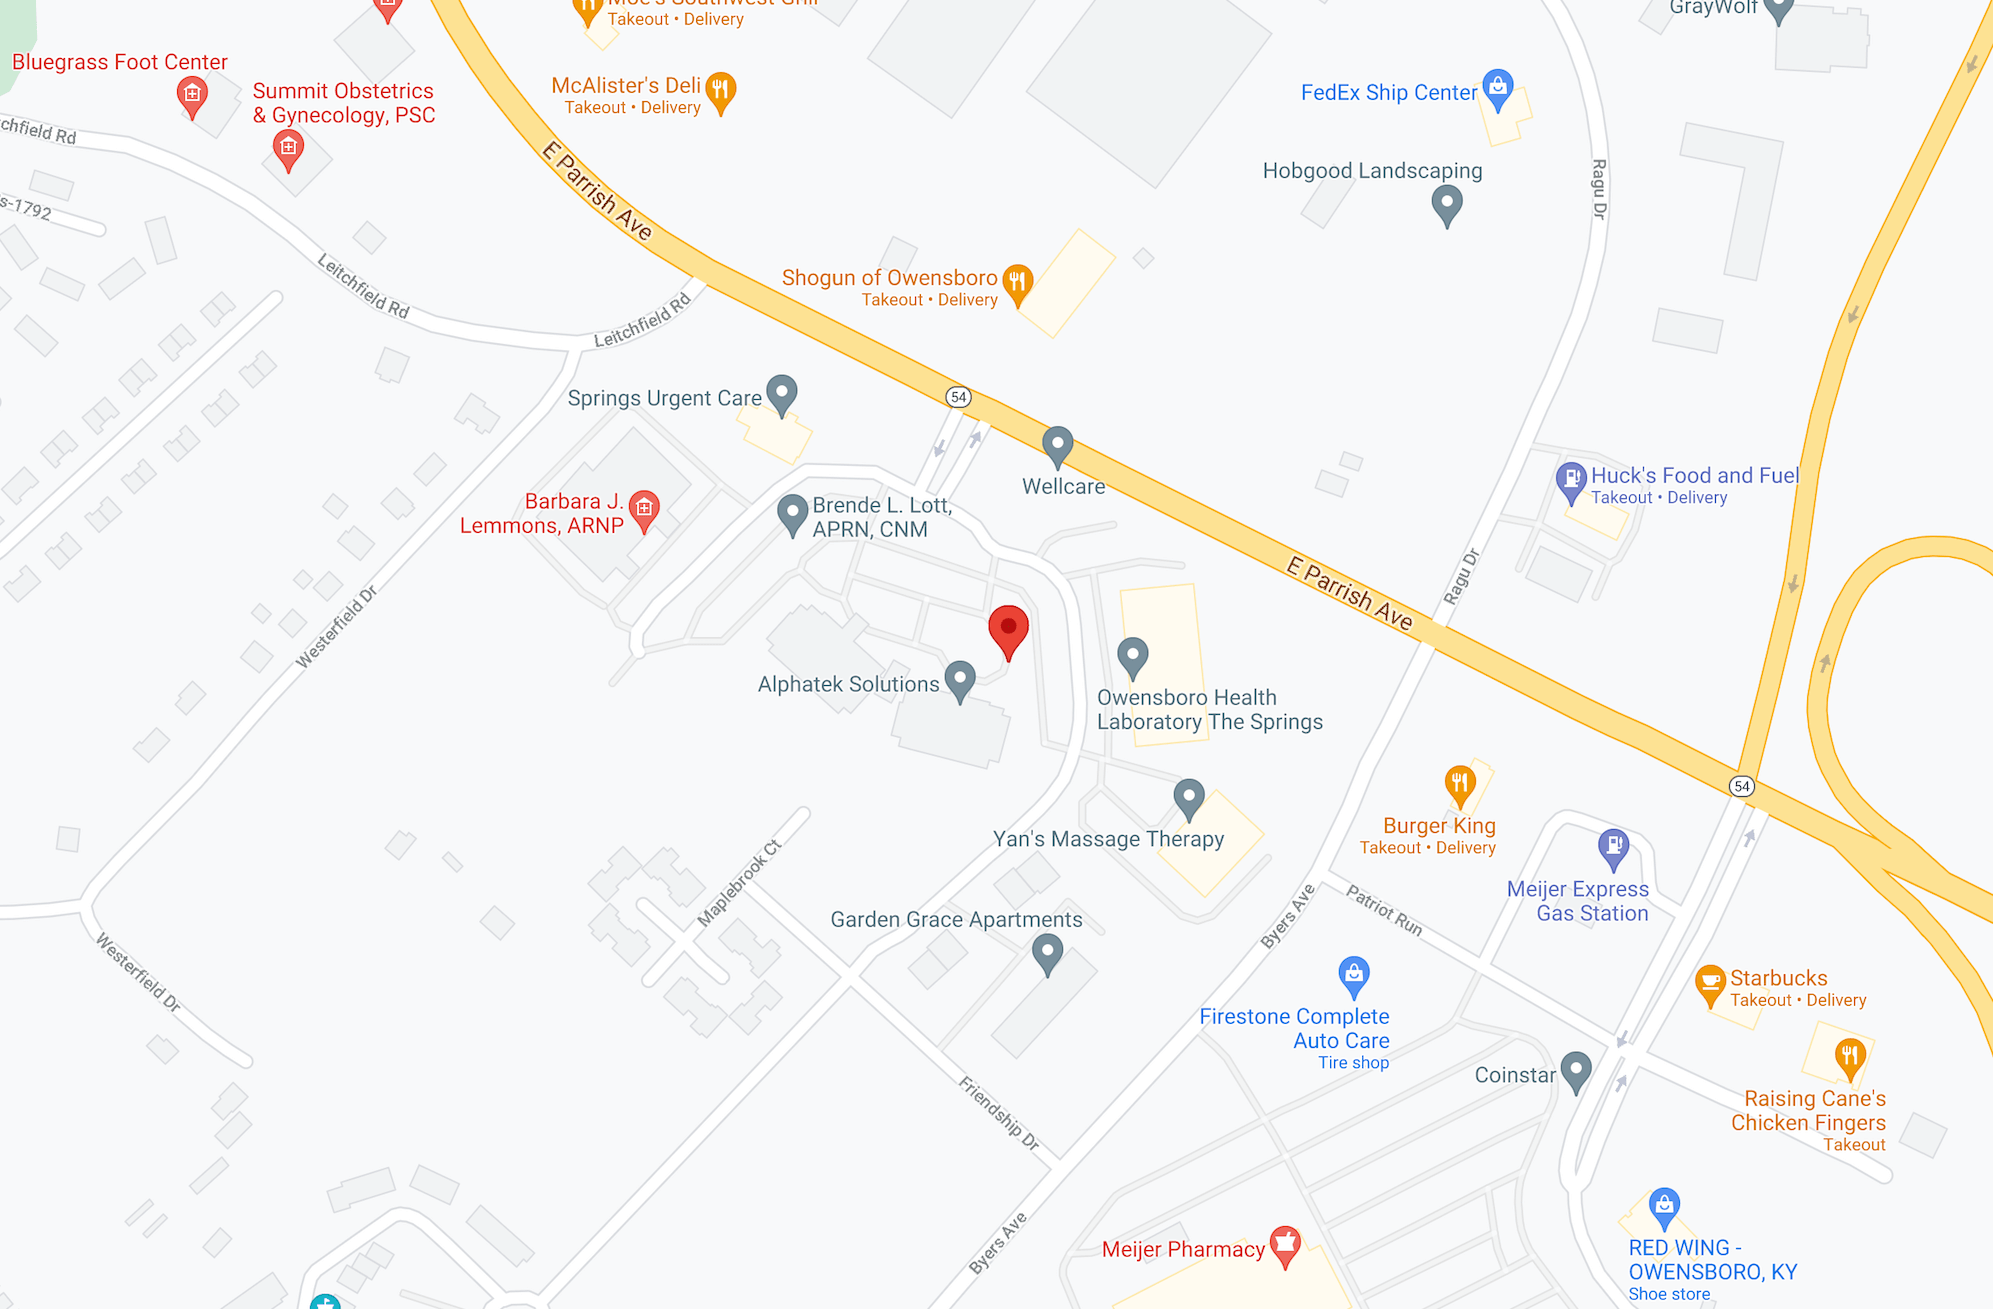 Map of Fowler Law location